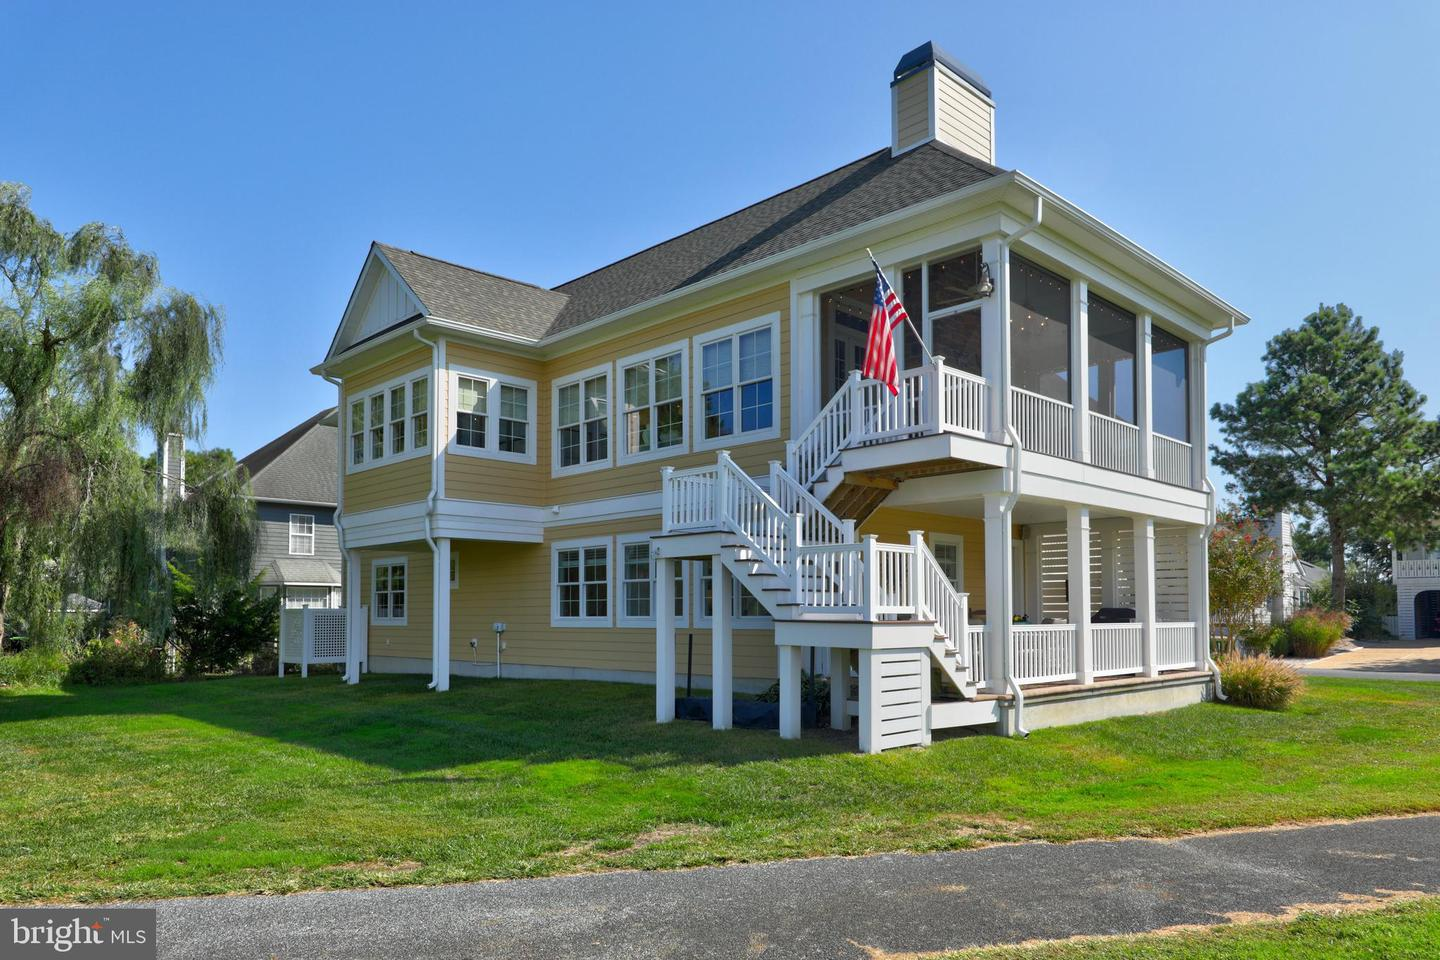 DESU170392-304328088378-2020-10-01-14-26-54 419 Canal Way W | Bethany Beach, DE Real Estate For Sale | MLS# Desu170392  - Ocean Atlantic